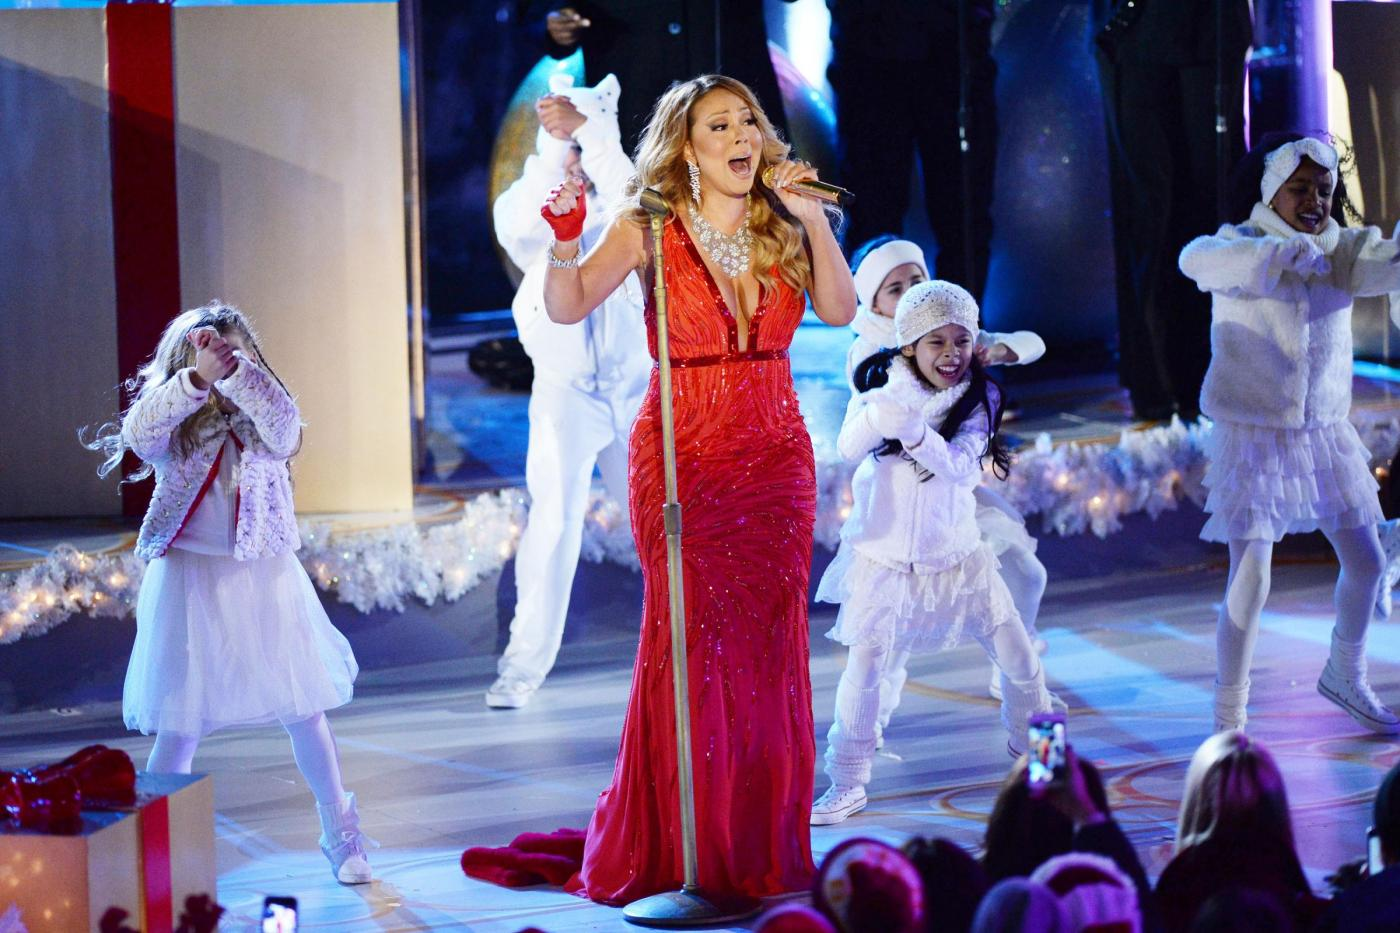 Mariah Carey All I Want For Christmas is You Rockefeller Center